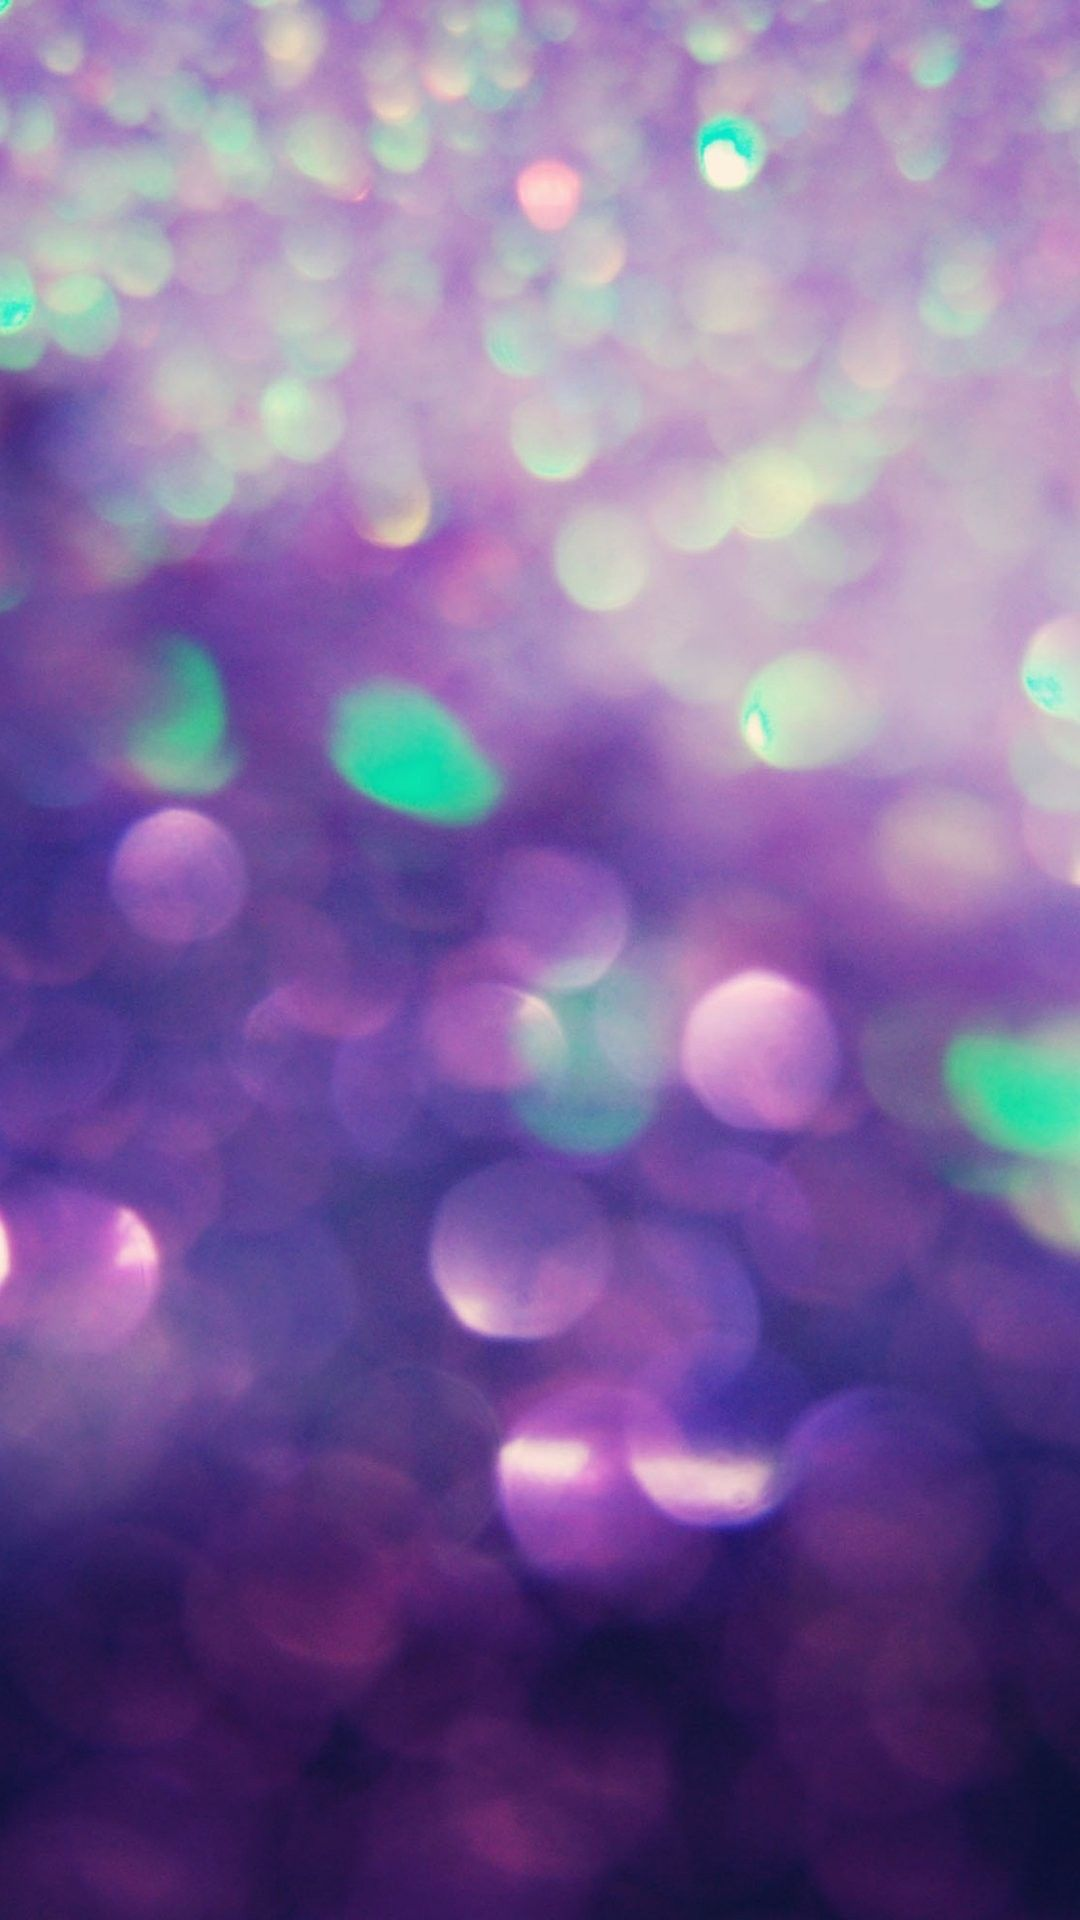 Sparkly iPhone 6 Plus Wallpaper 24031 Abstract iPhone 6